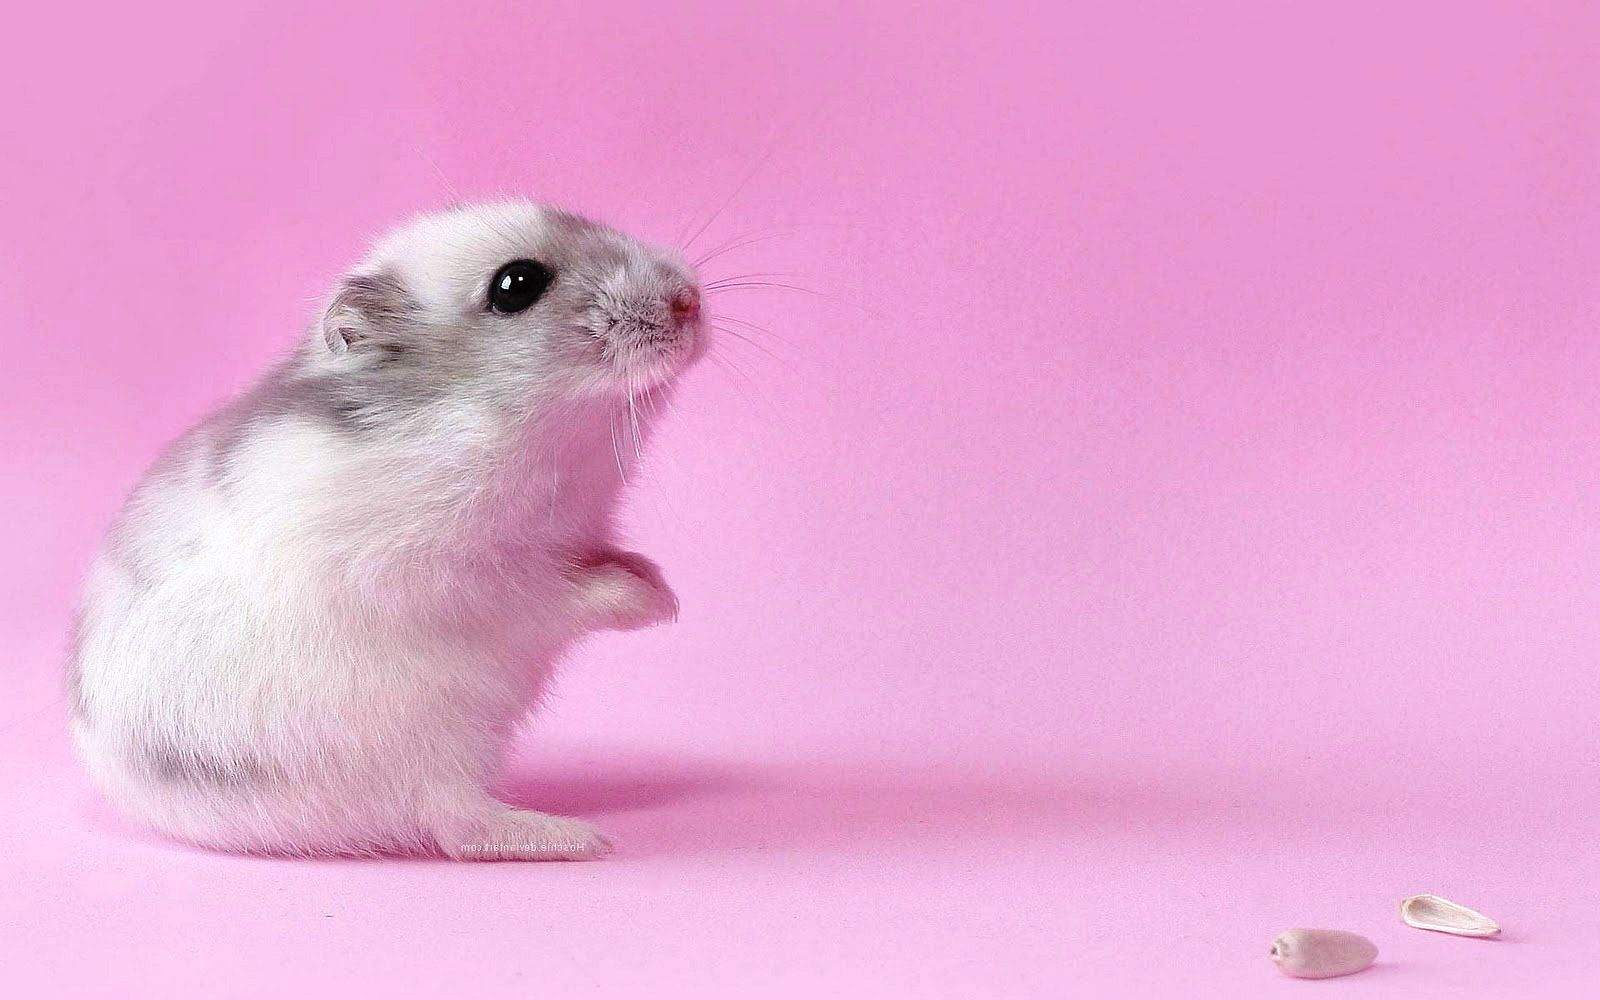 ideas about hamster wallpaper on pinterest hamsters, cute 1600